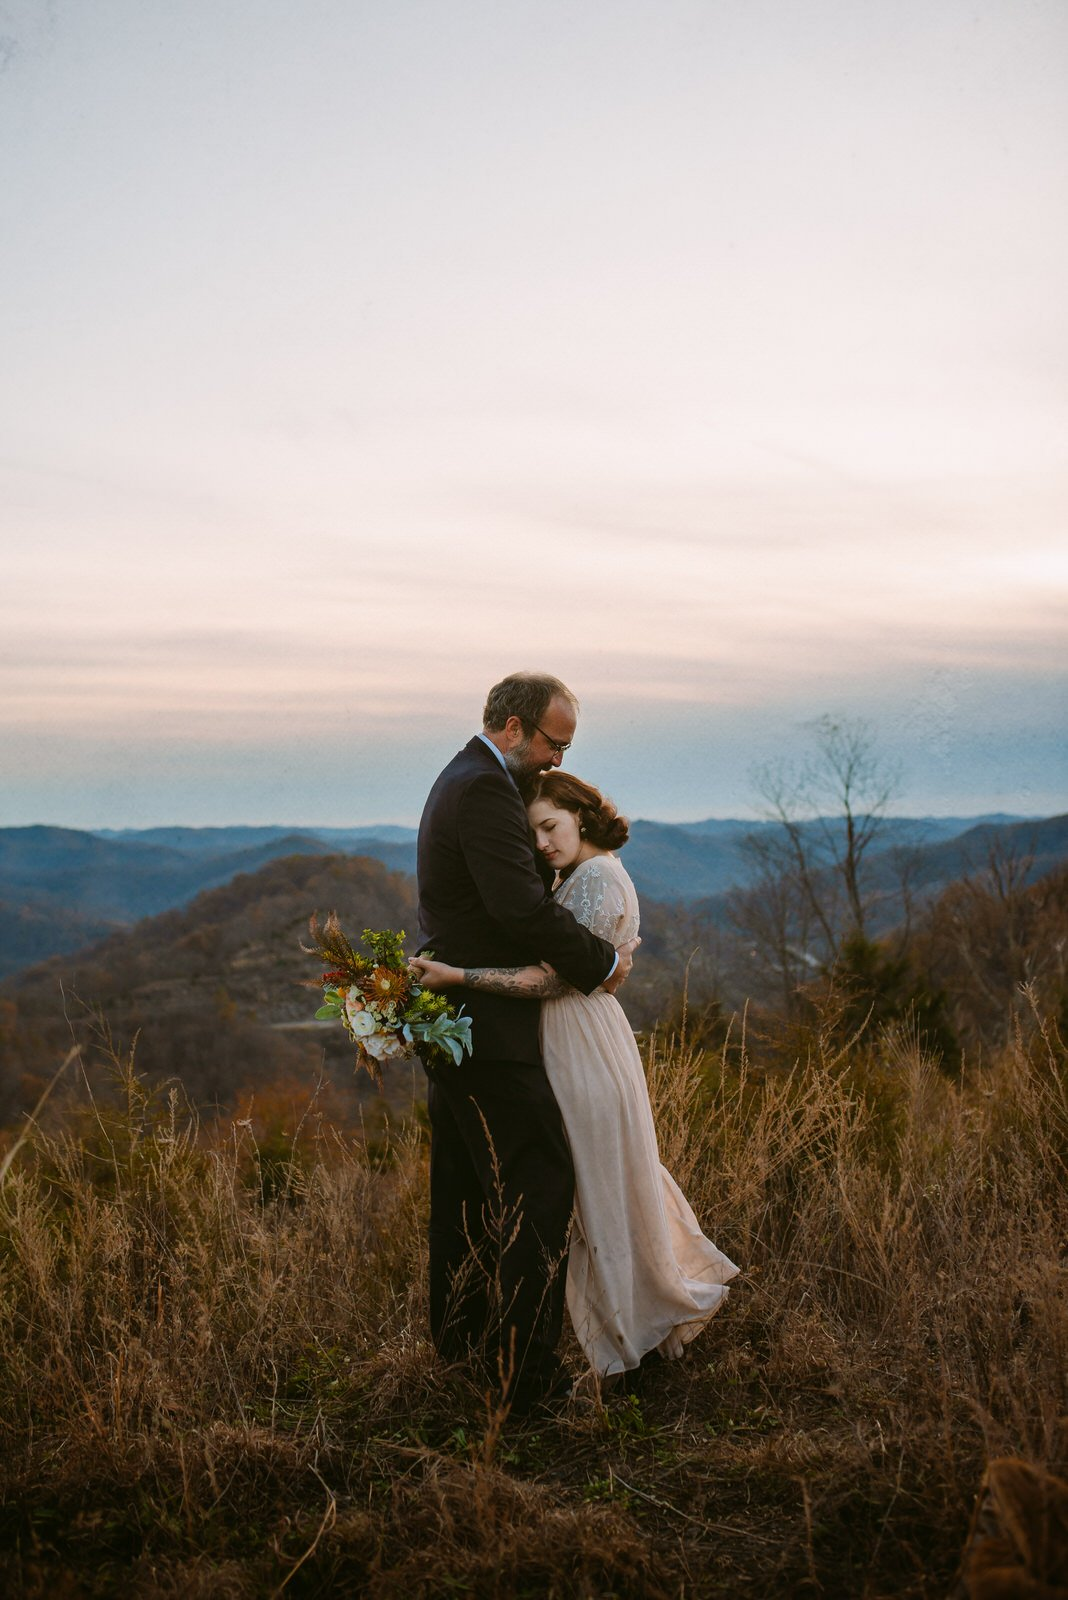 bride in embroidered dress and tattoos embraces groom in black suit standing on high hill with grasses and Kentucky mountains in background